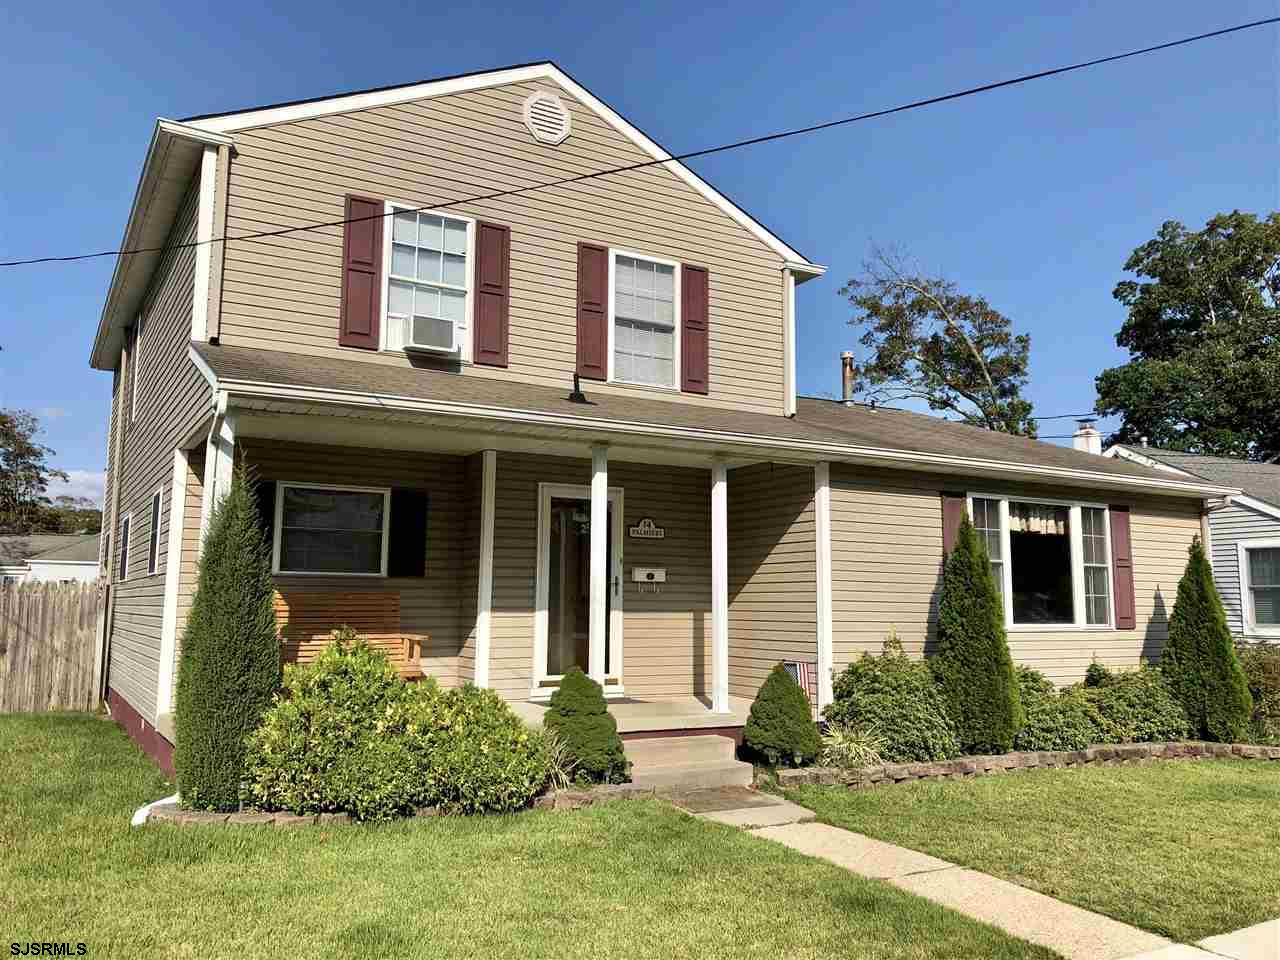 14 Locust Dr, Northfield, NJ, 08225